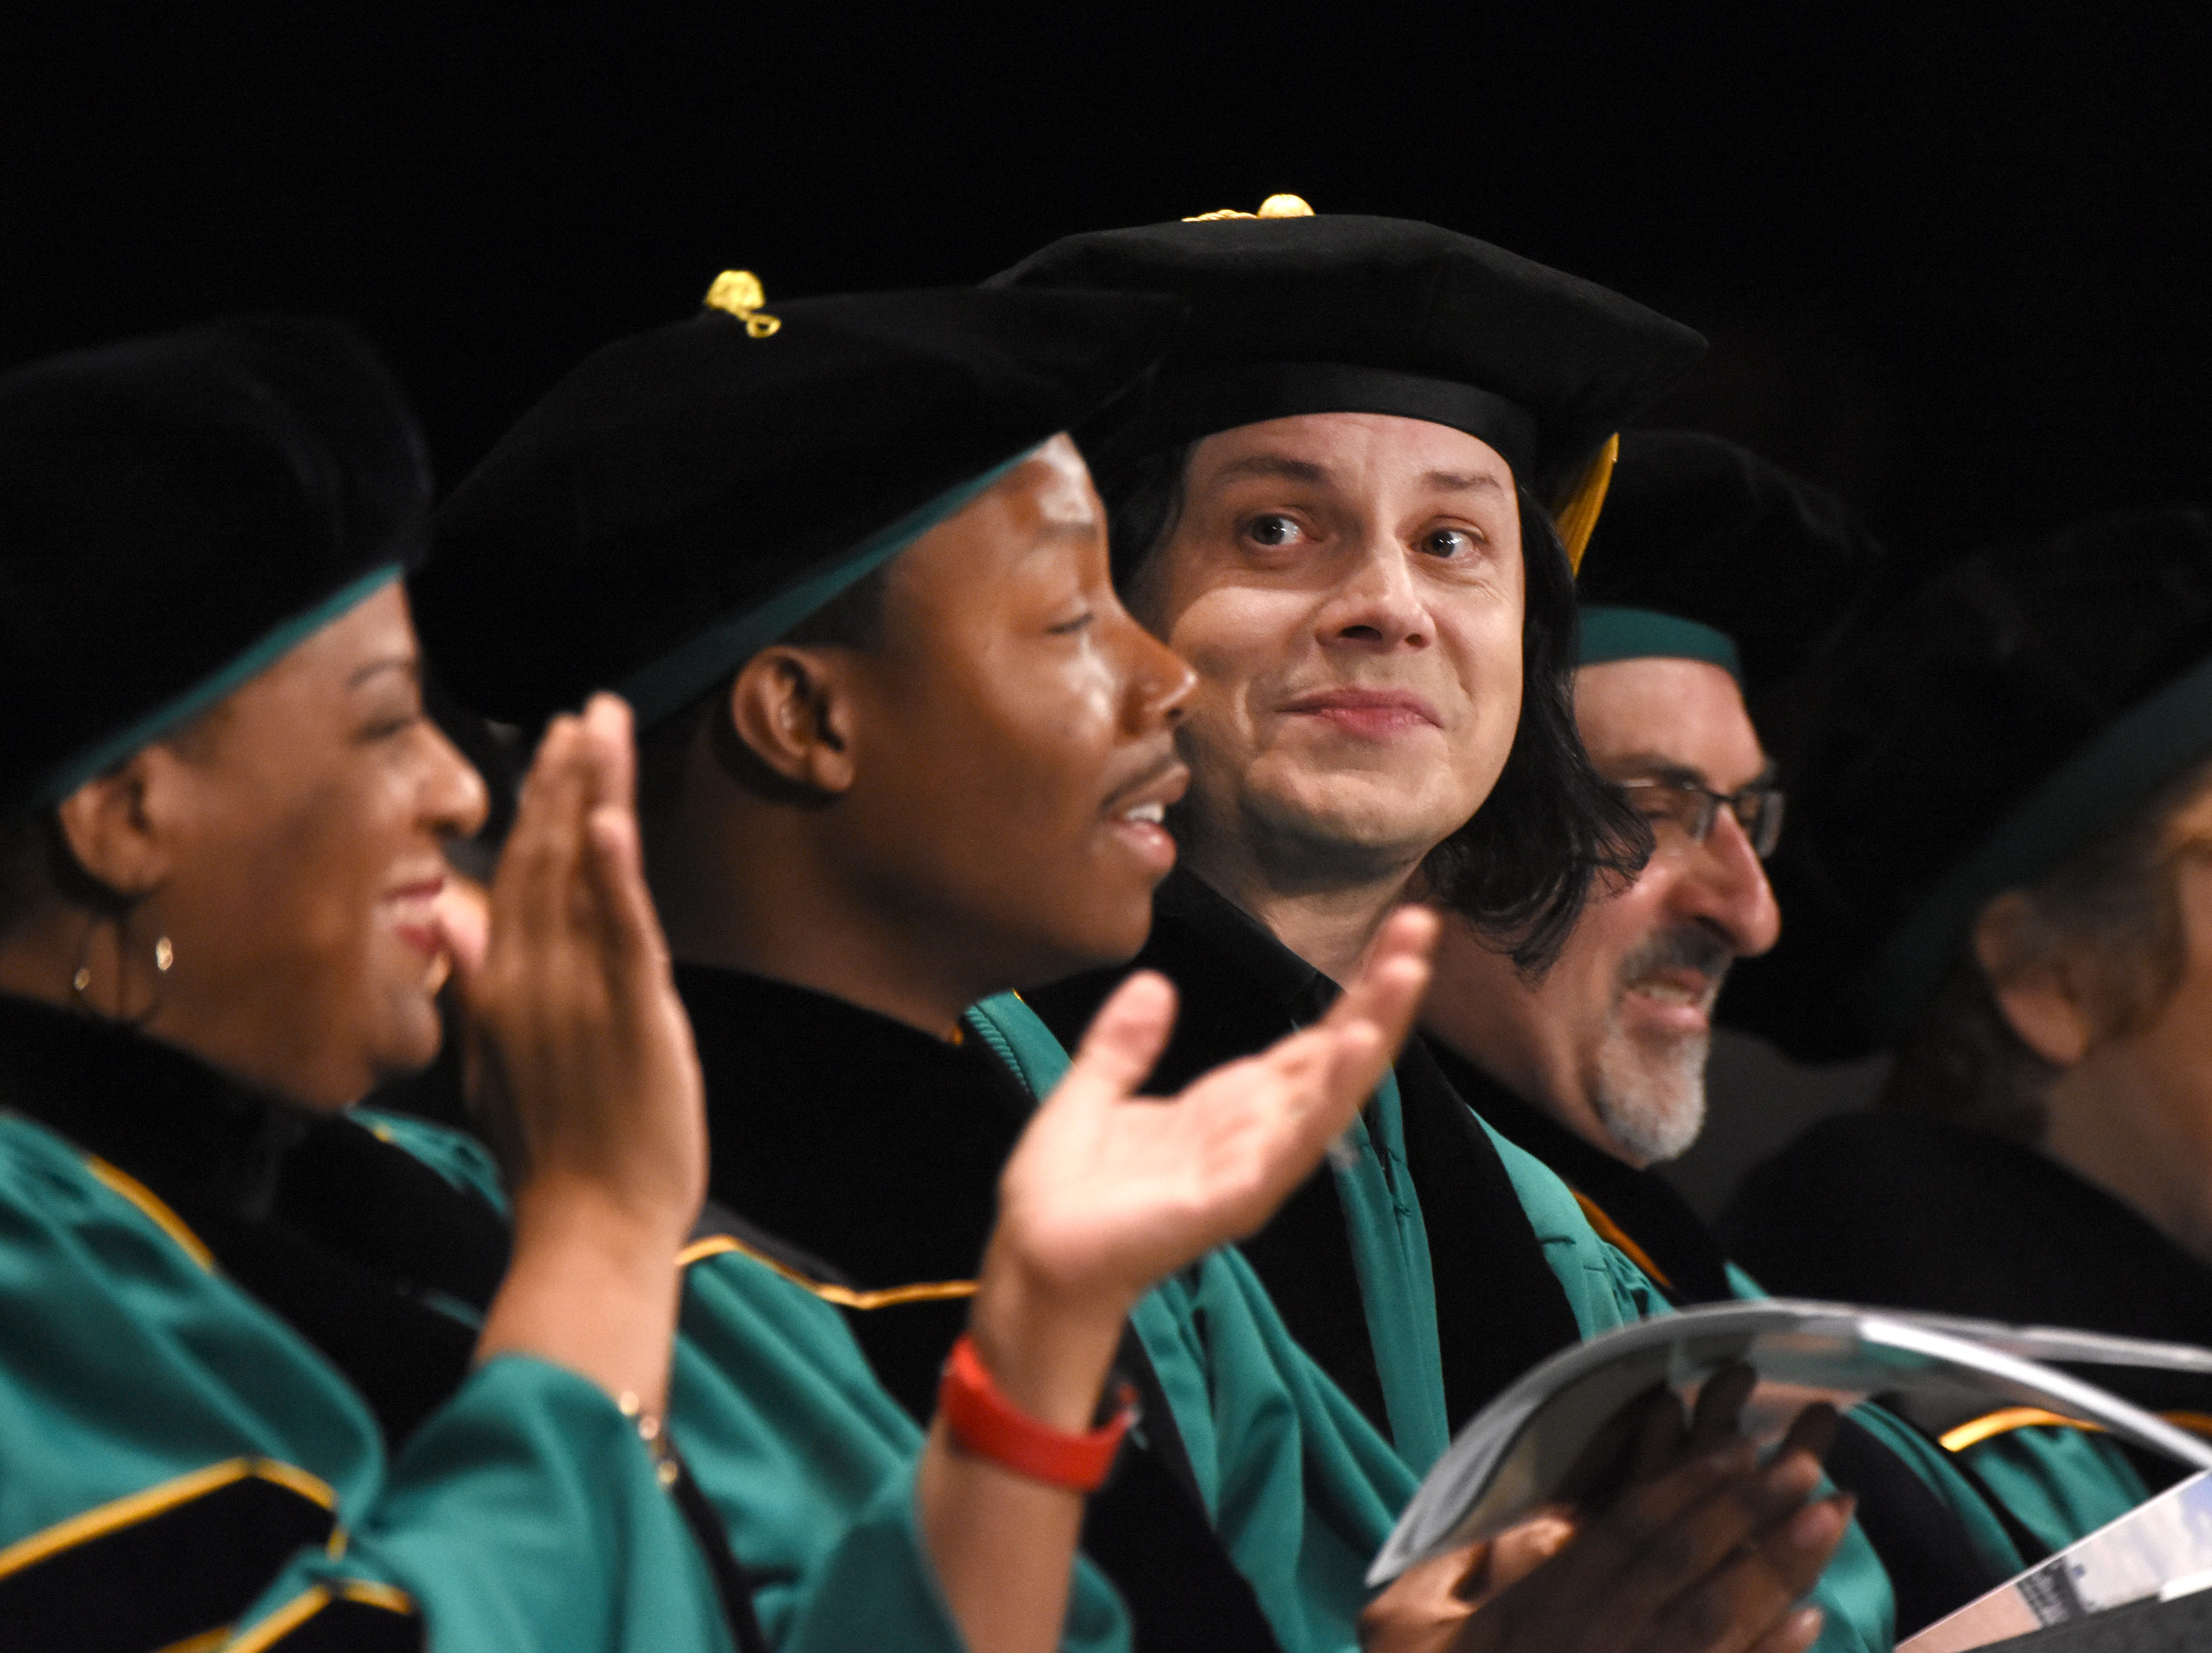 Musician Jack White reacts moments before receiving an honorary degree during the Wayne State University commencement exercises at the Fox Theatre on Friday, May 3, 2019.